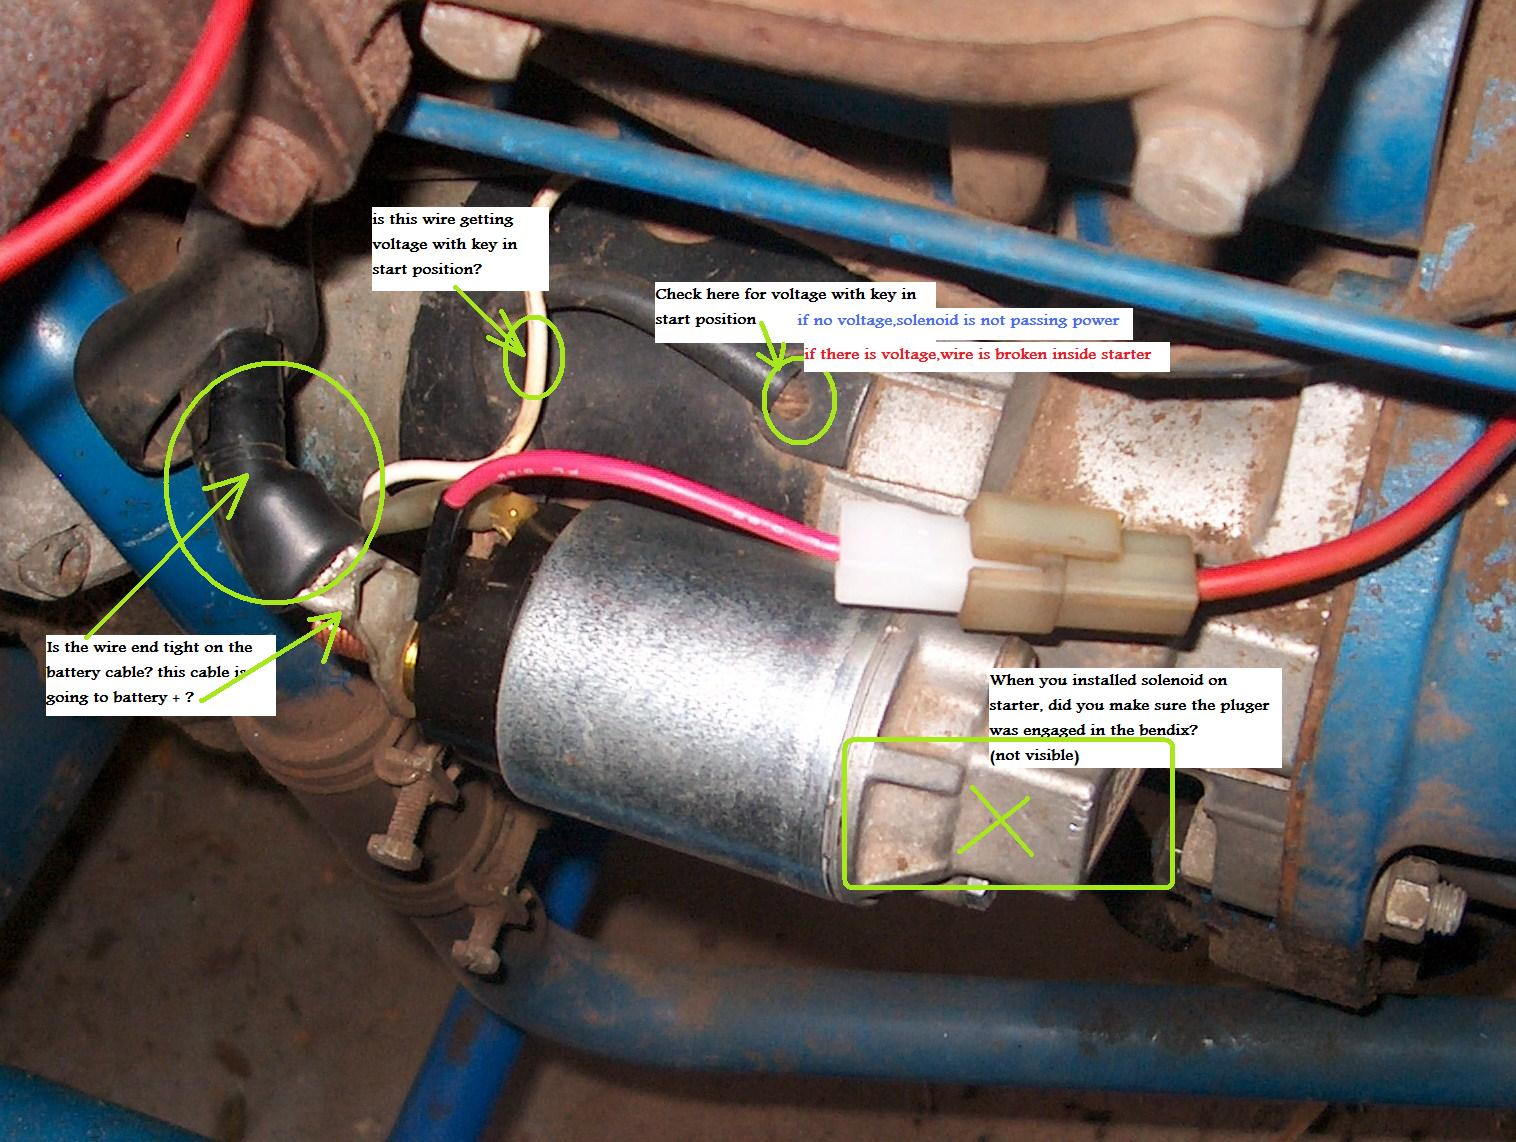 ford 1710 wiring diagram only wiring diagramford 1710, new battery, starter solenoid, key switch get 12 6v toford 1710